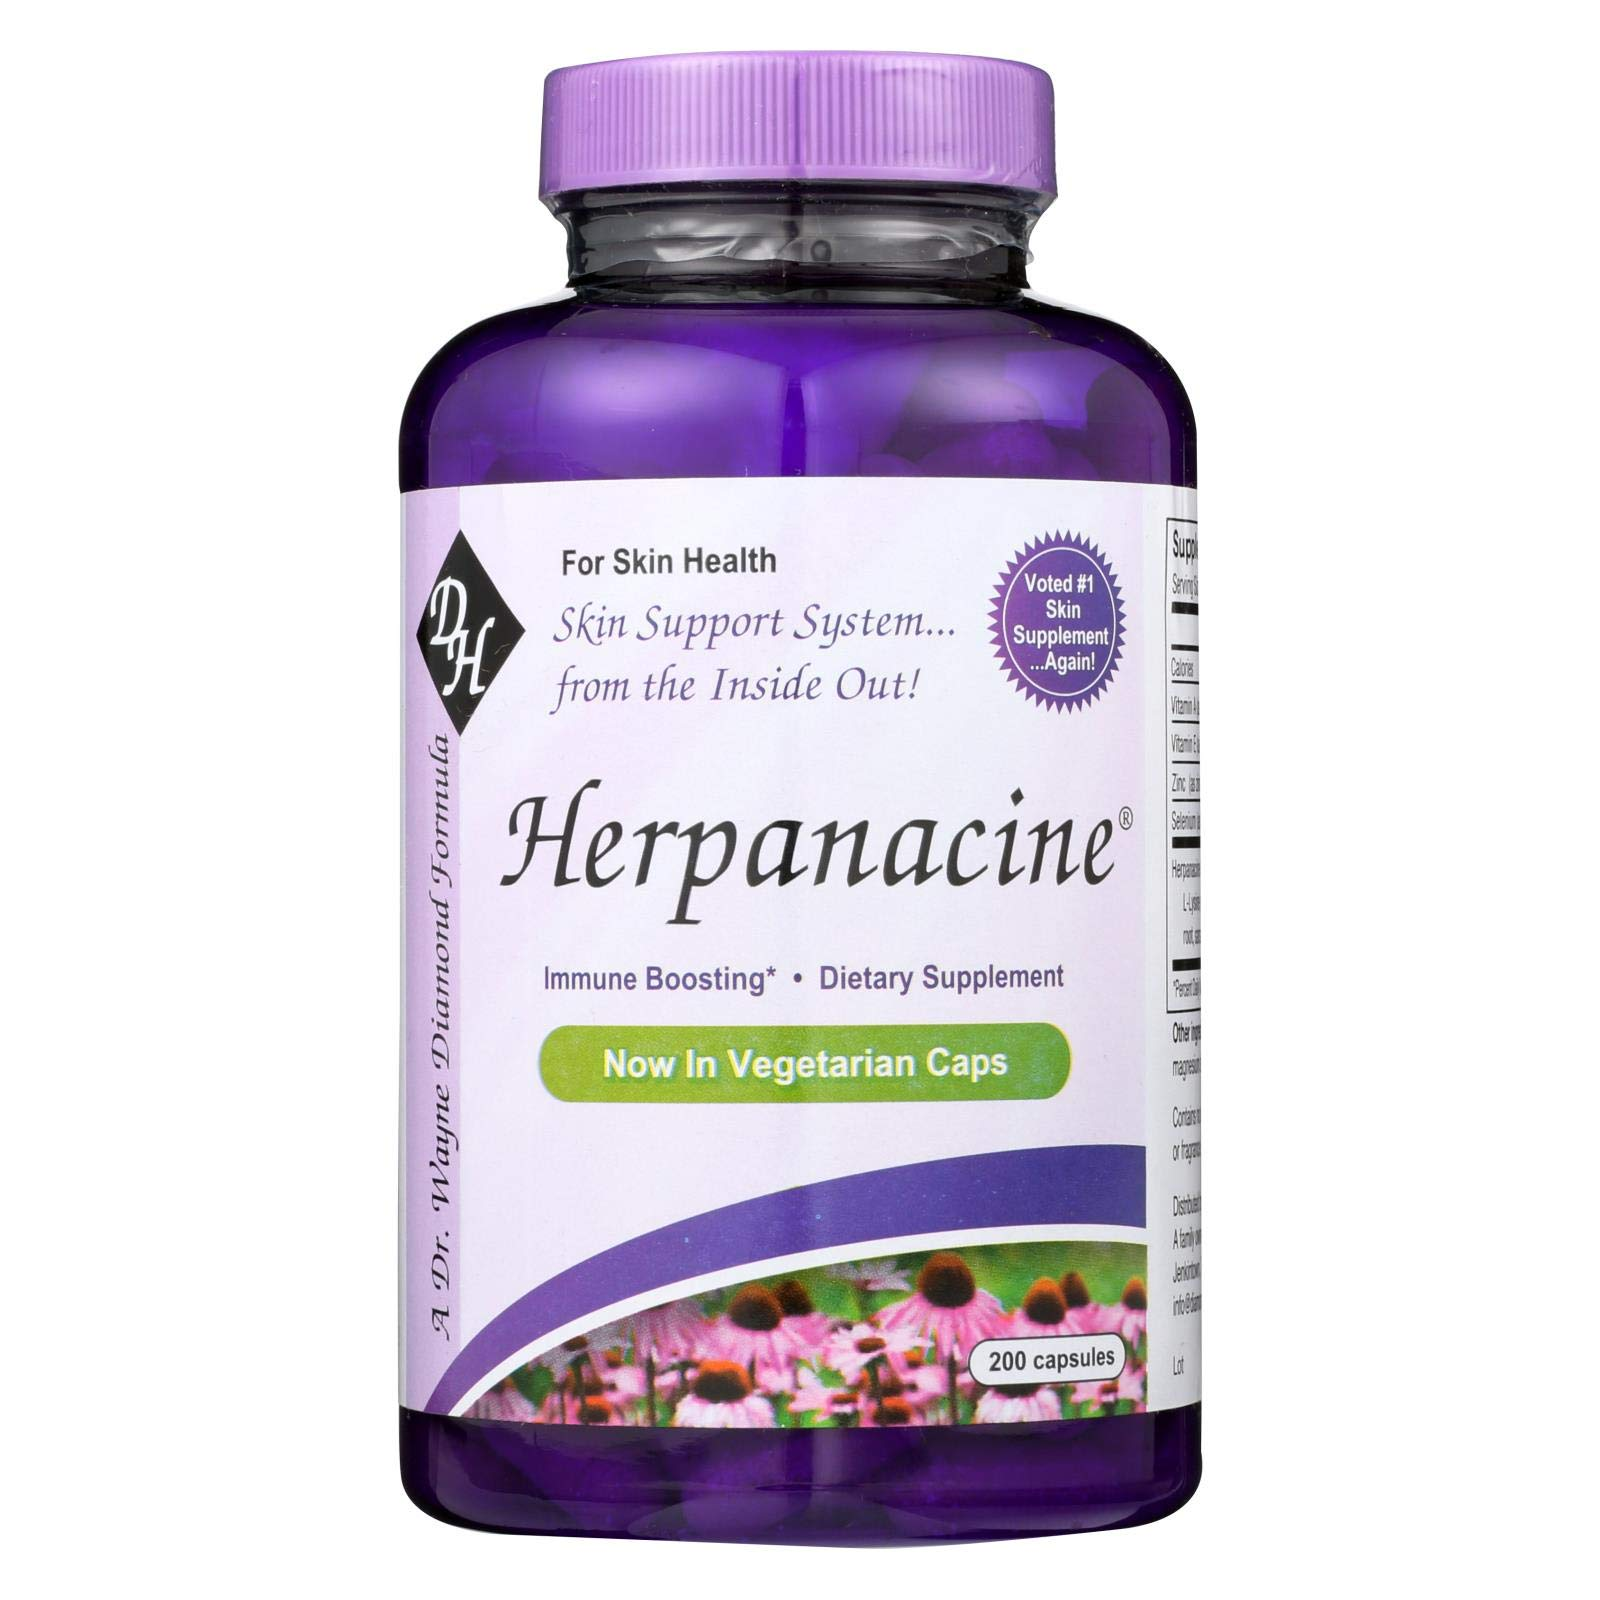 Diamond Herpanacine Natural Skin Support Supplement 200 capsules | for Complete Skin Health by Herpanacine